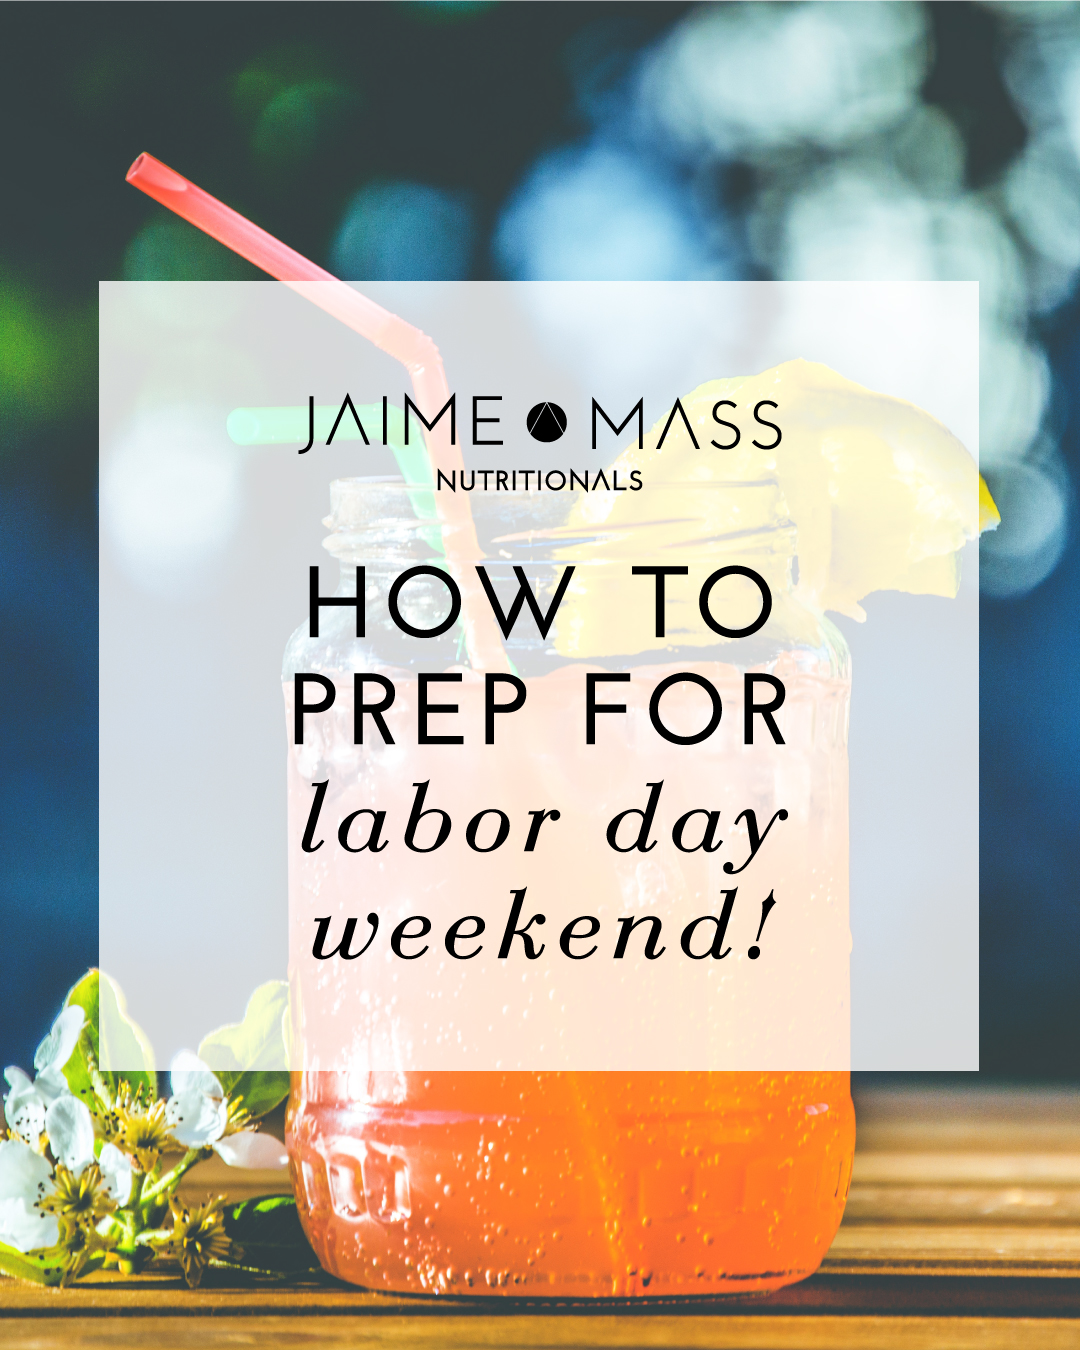 How to Prep for Labor Day Weekend - Jaime Mass Nutritionals